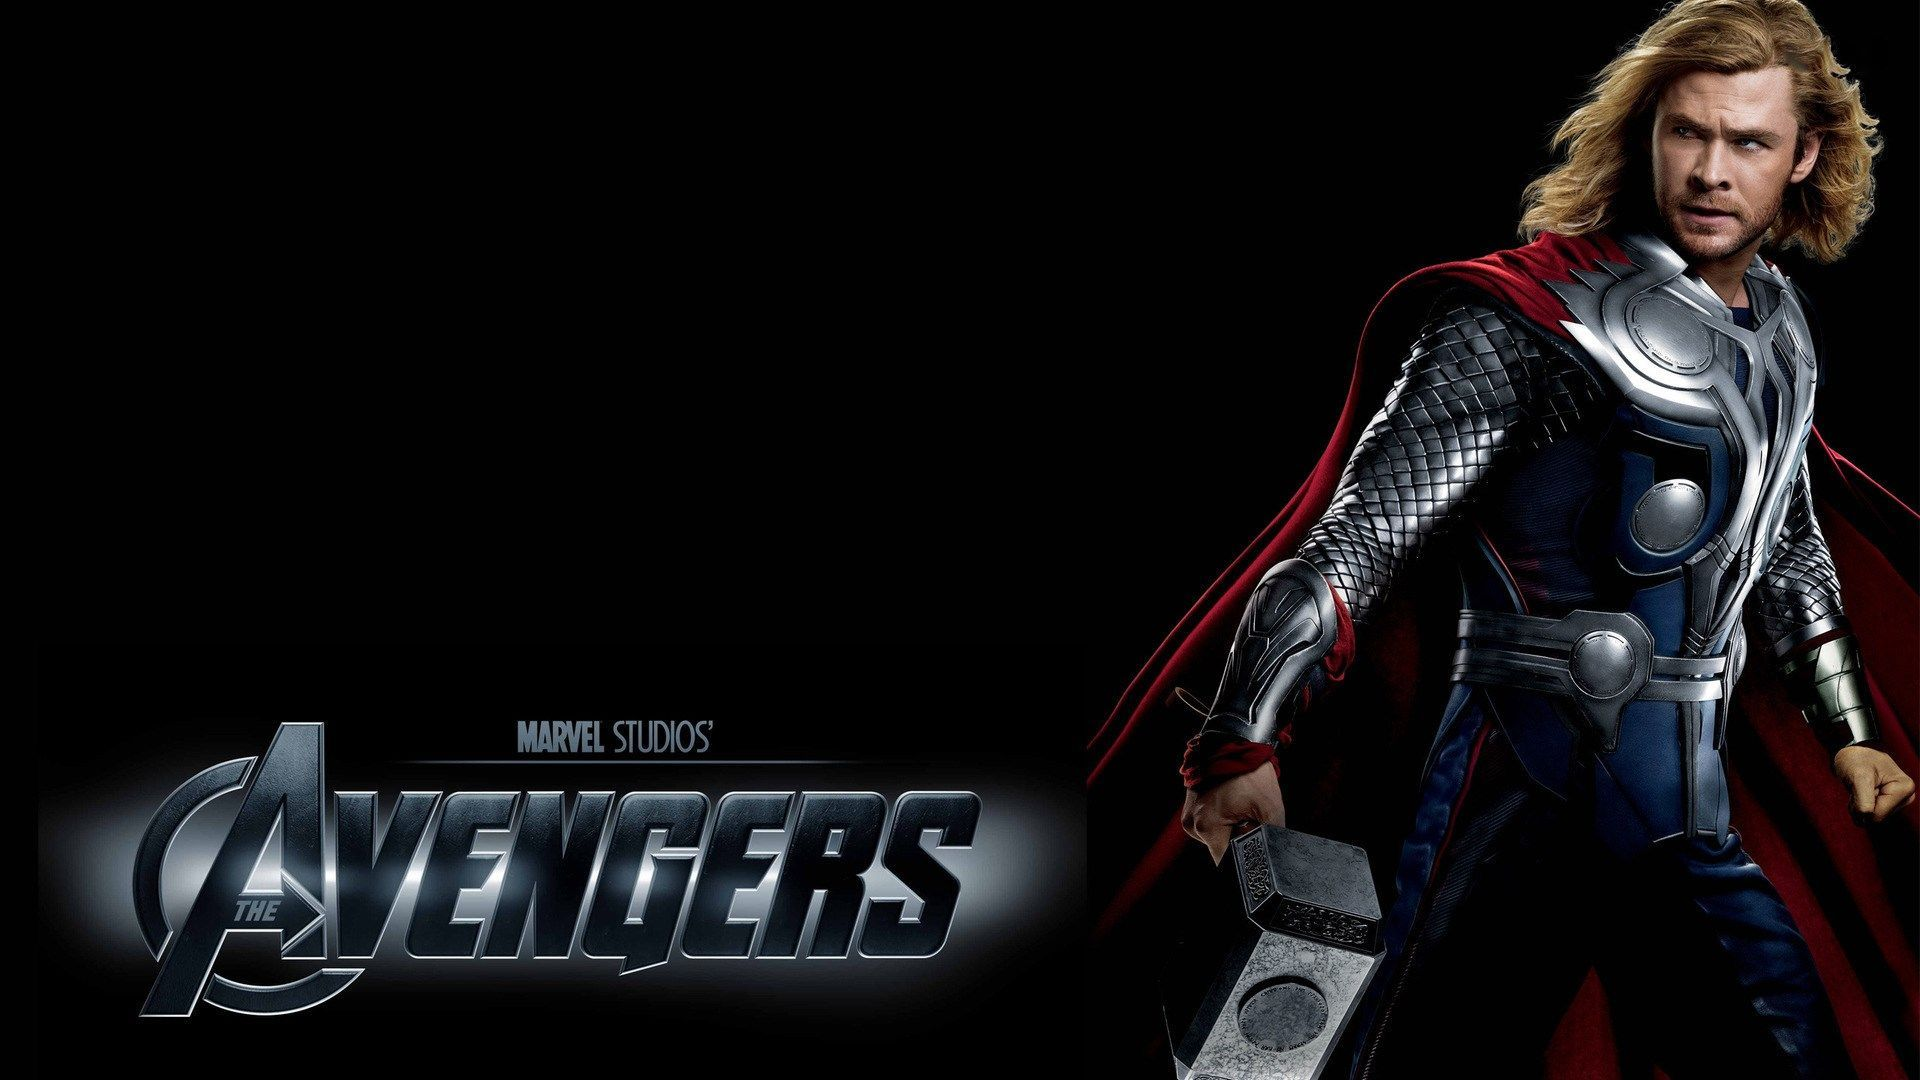 thor wallpaper hd widescreen